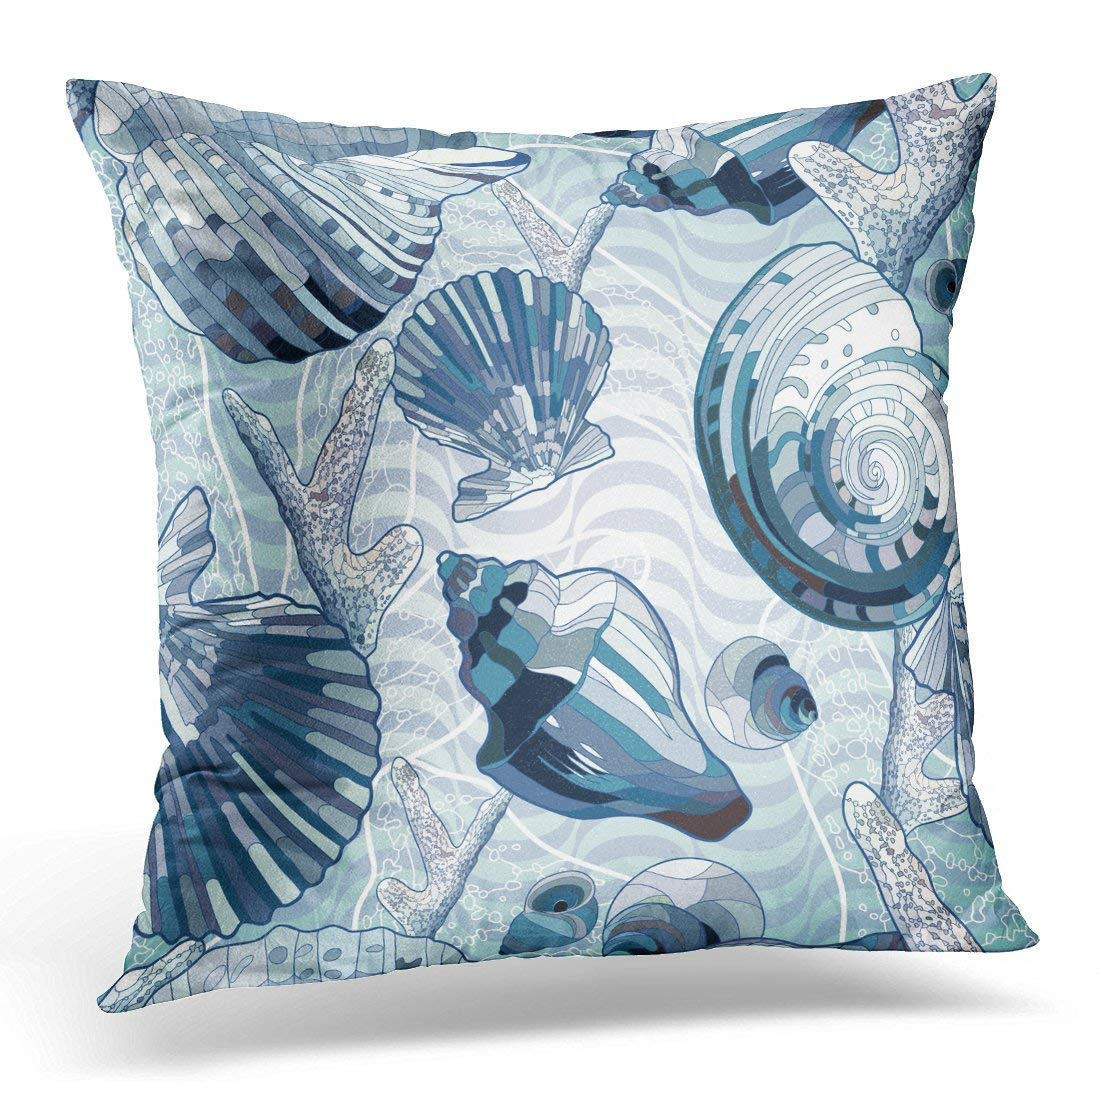 Nautical Sofa Throws Arhome Blue Sea Pattern In Nautical Style With Seashells Wave Throw Pillow Case Pillow Cover Sofa Home Decor 16x16 Inches